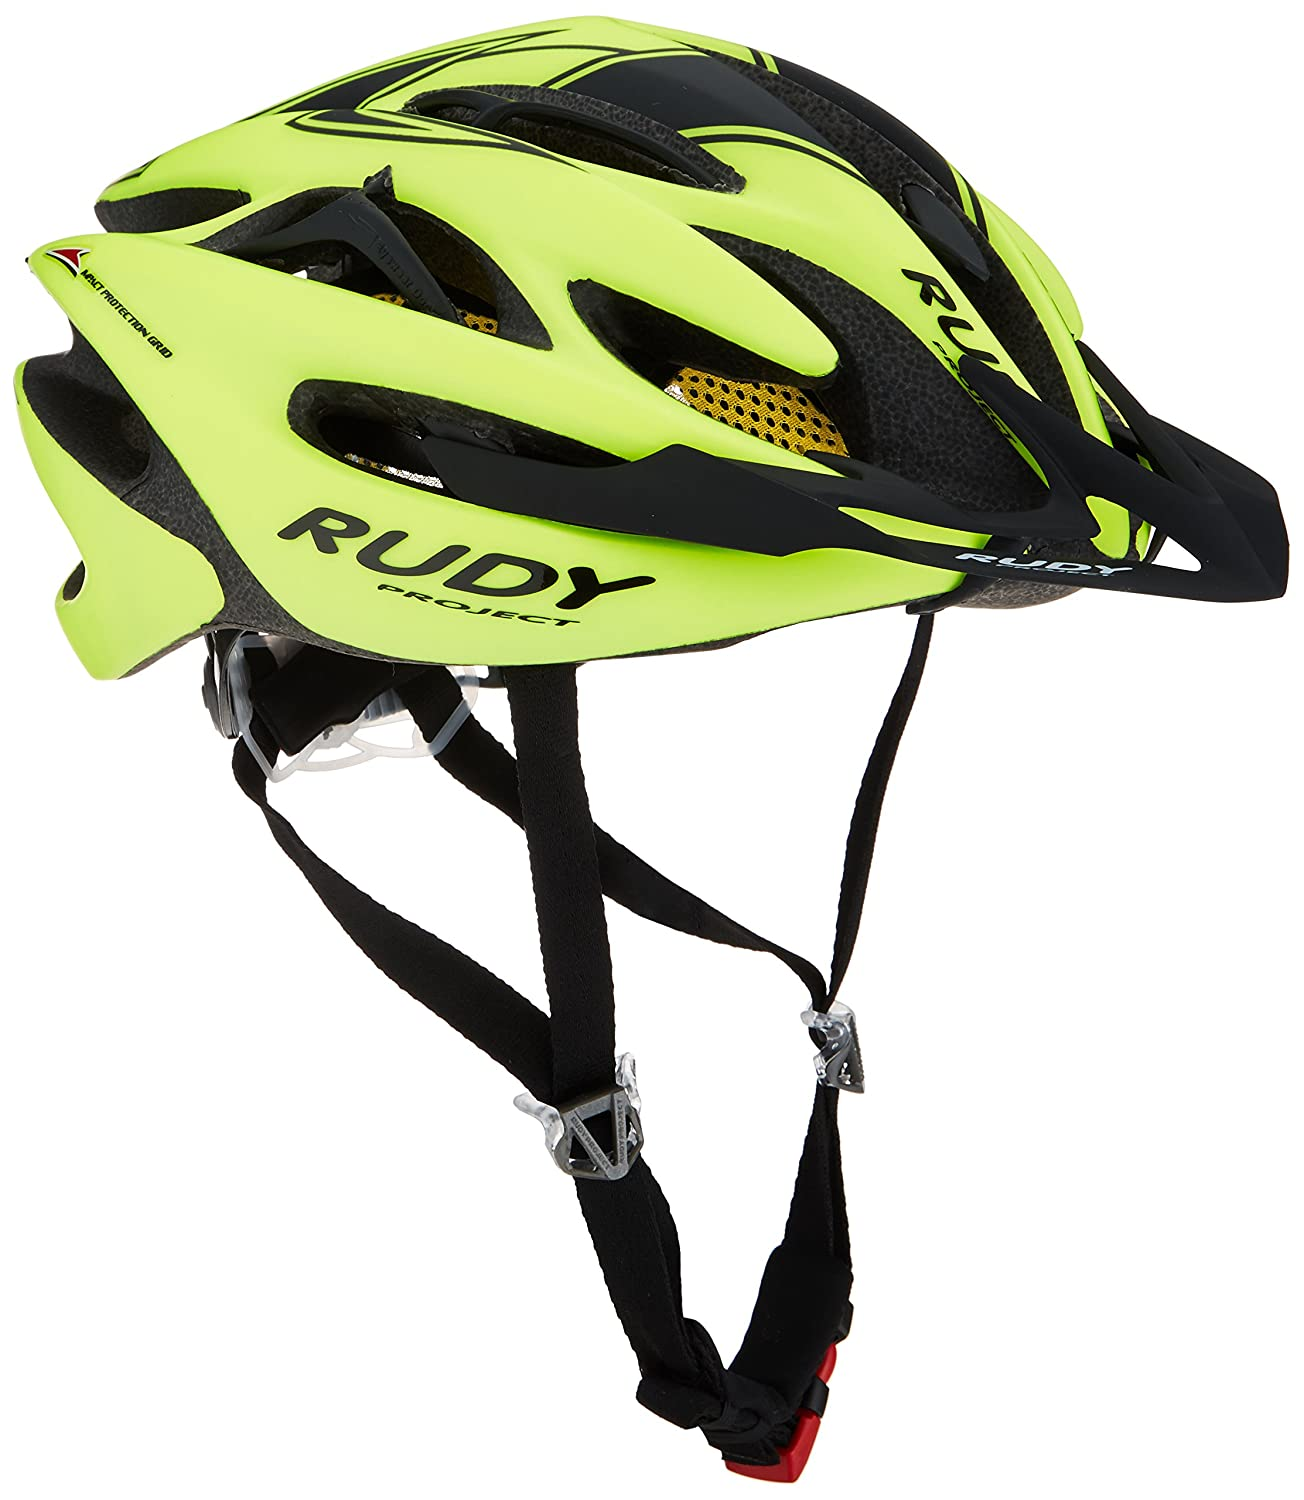 Rudy Project Sterling, Casco Ciclismo Unisex-Adulto